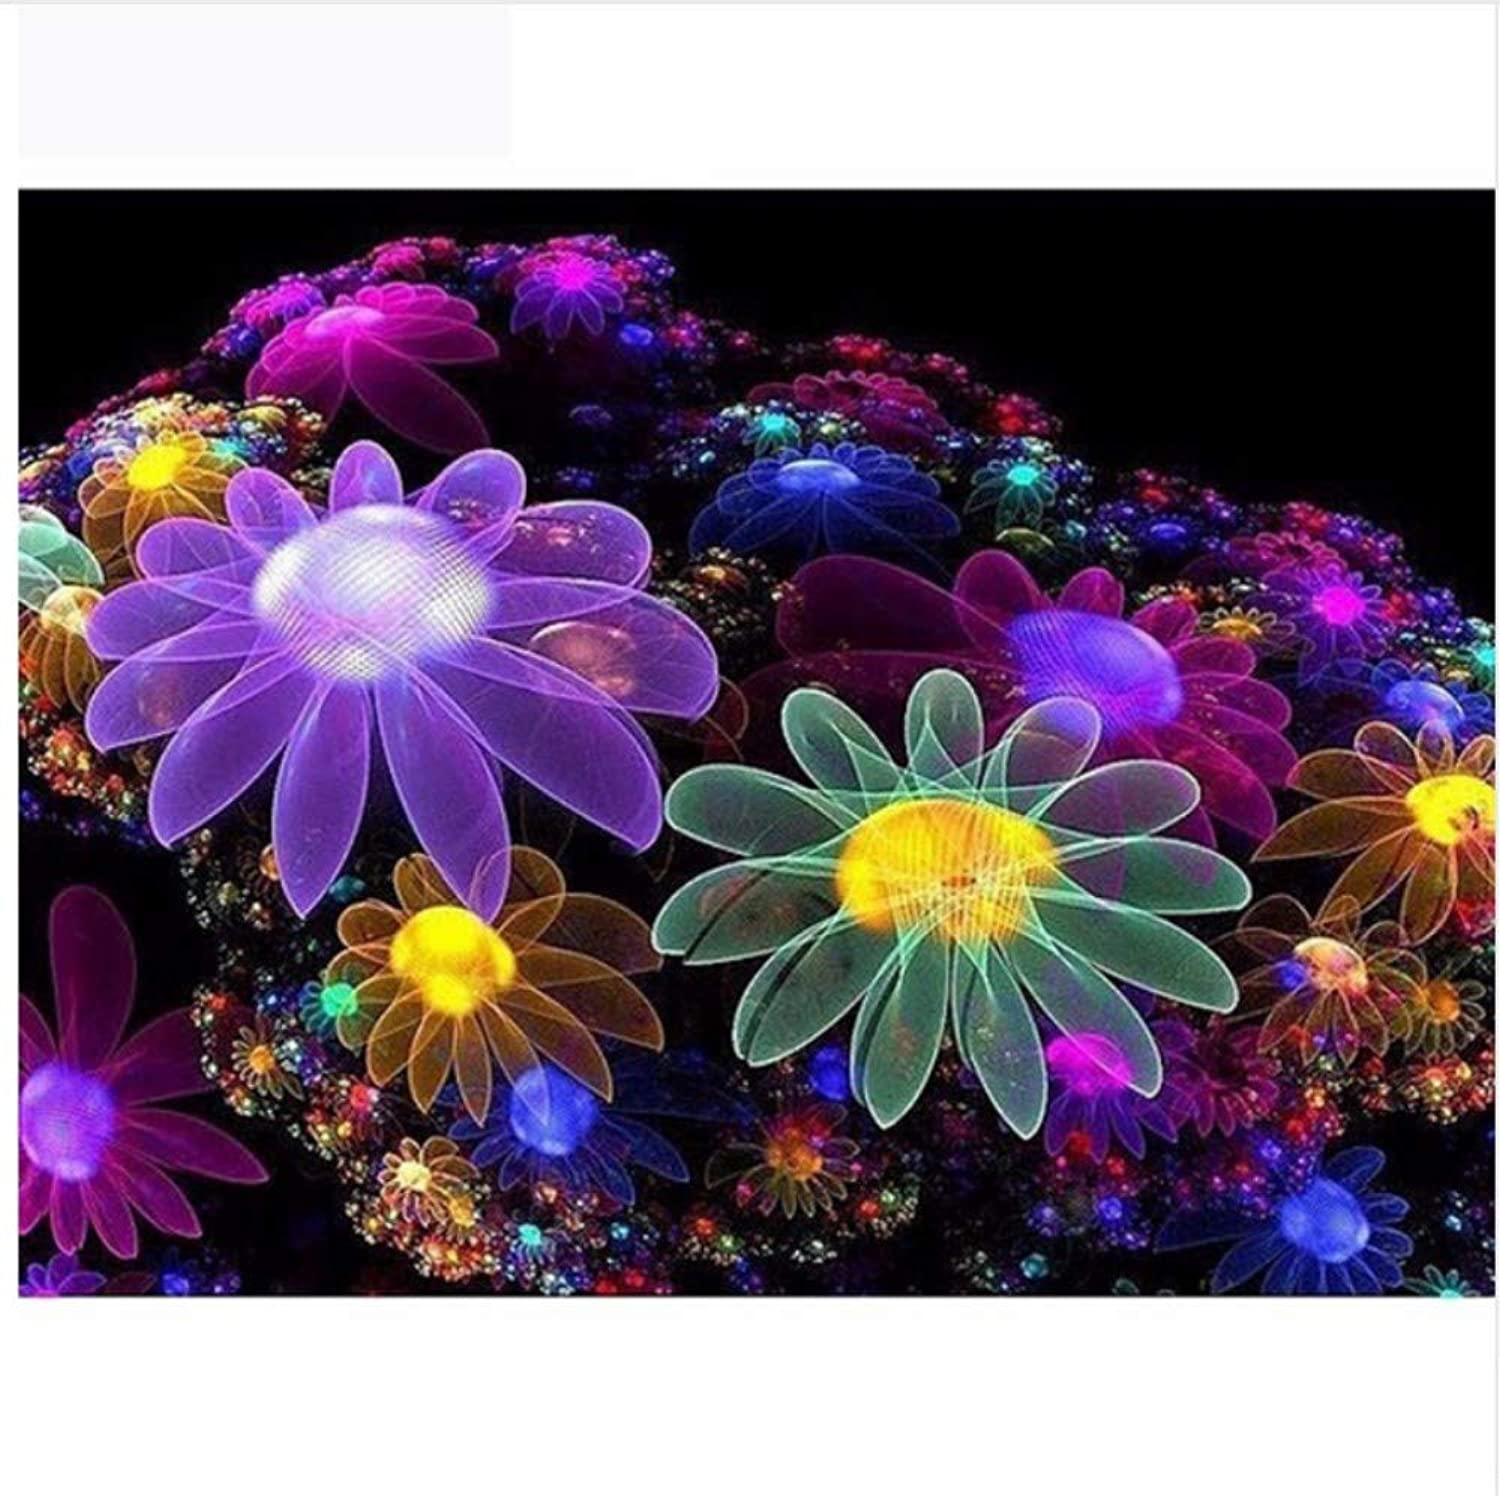 Jigsaw Puzzle 1000 Piece Glowing Flower Classic Puzzle DIY Kit Wooden Toy Unique Gift Home Decor